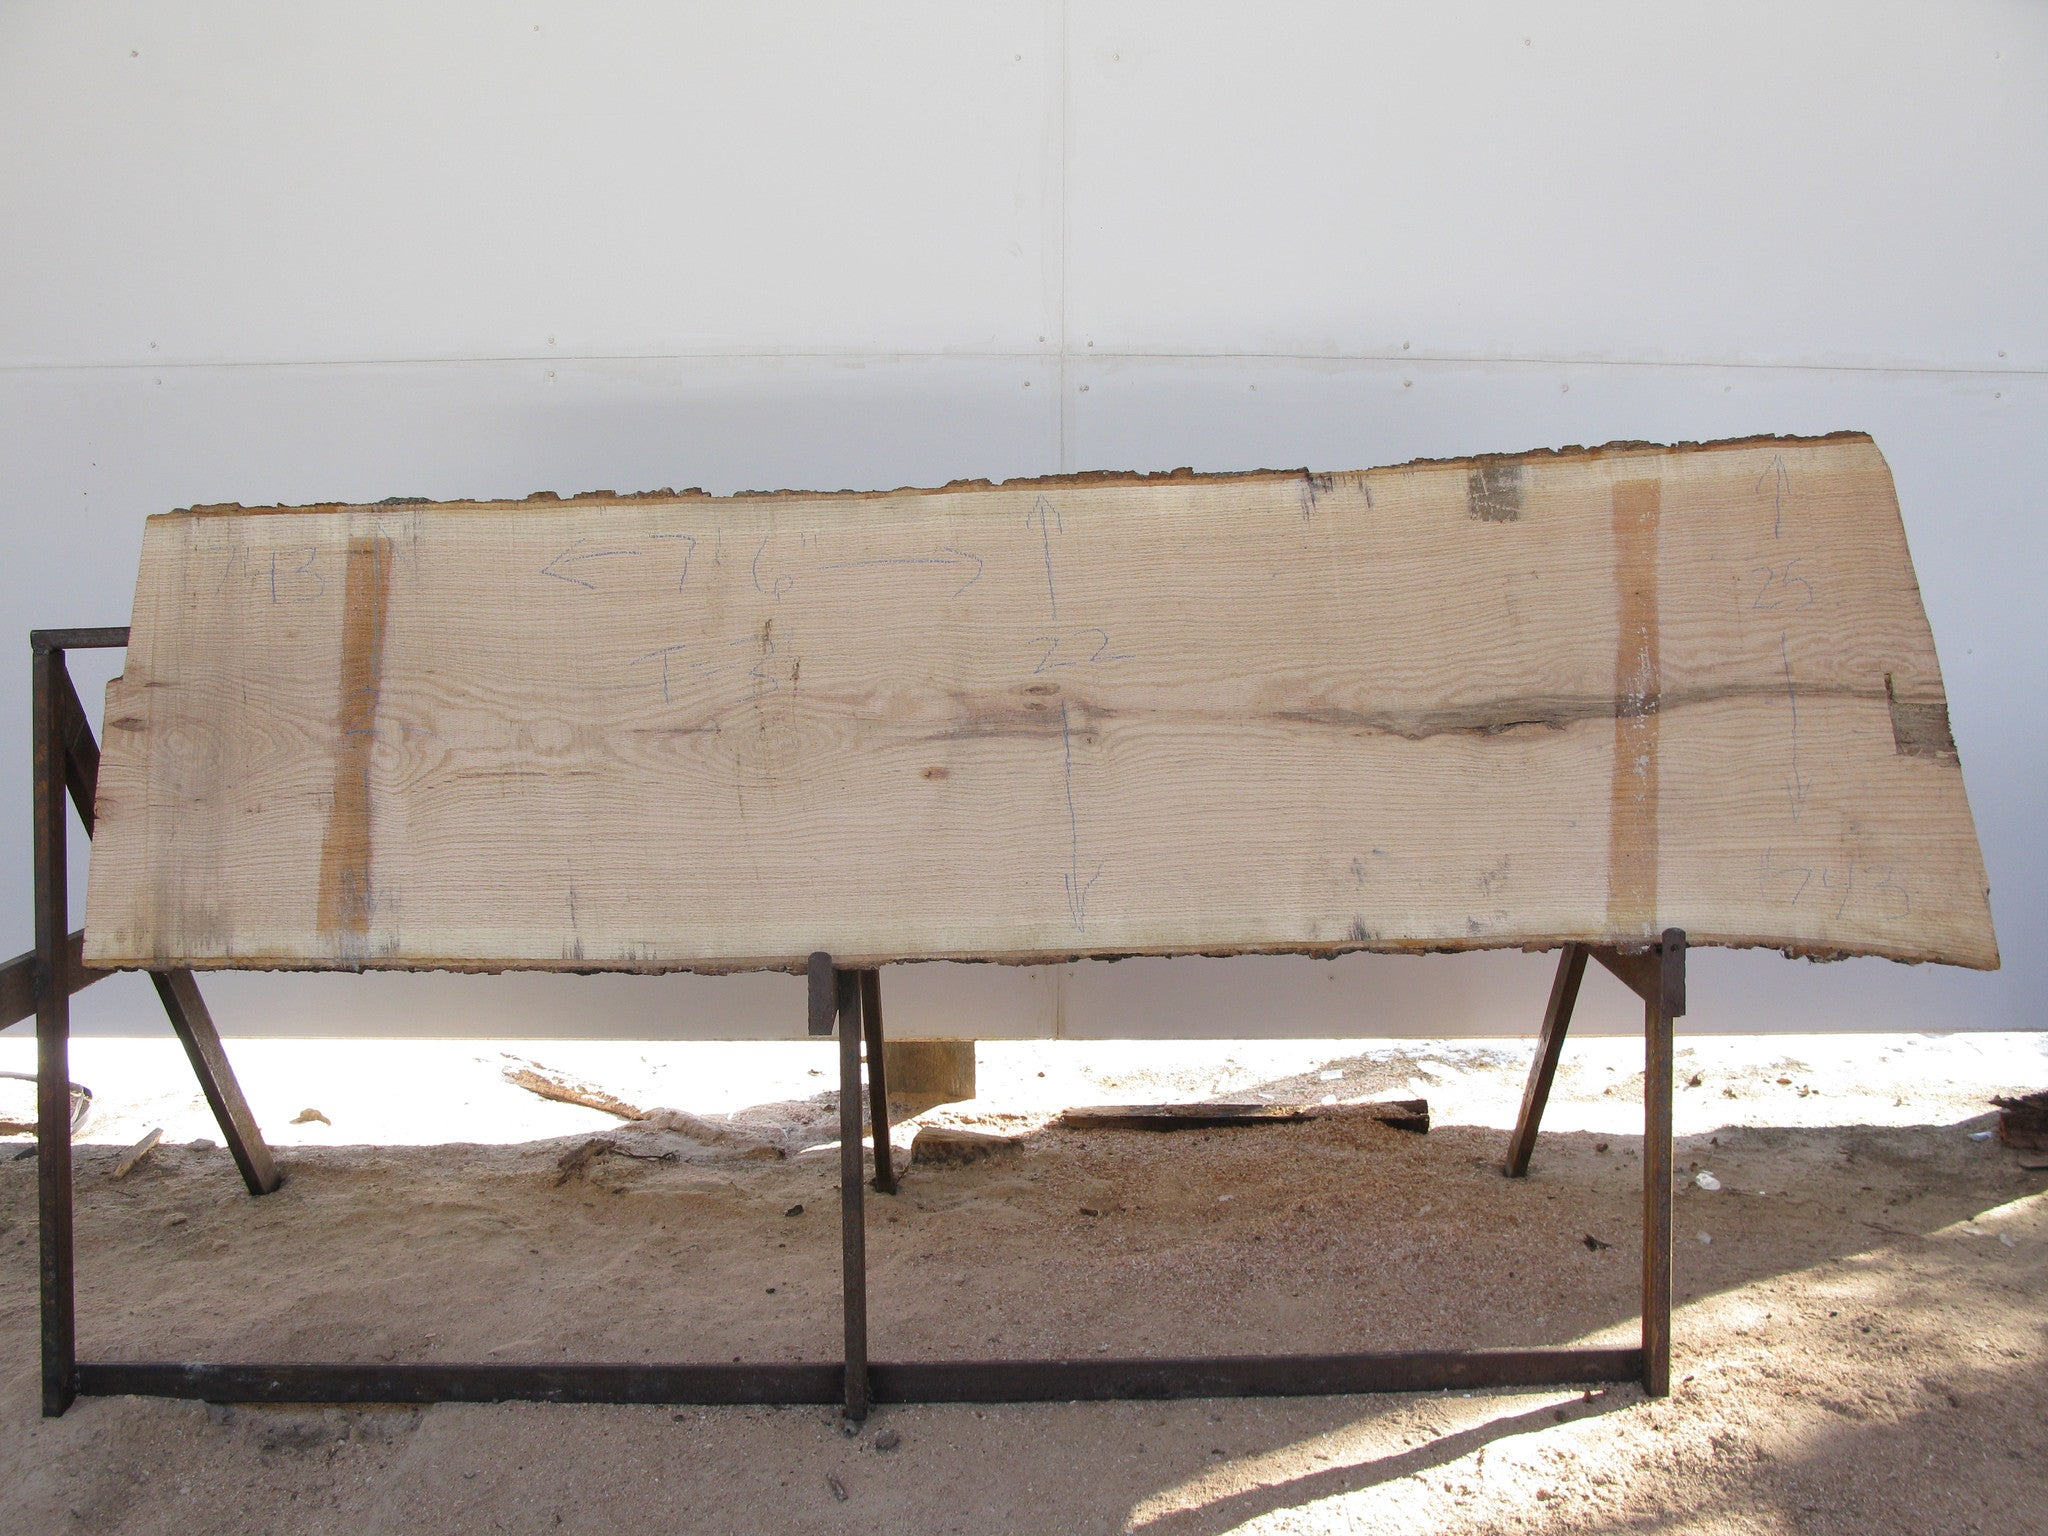 Swell Red Oak Slab 3 X 23 X 7 5 Ro 743 Download Free Architecture Designs Crovemadebymaigaardcom